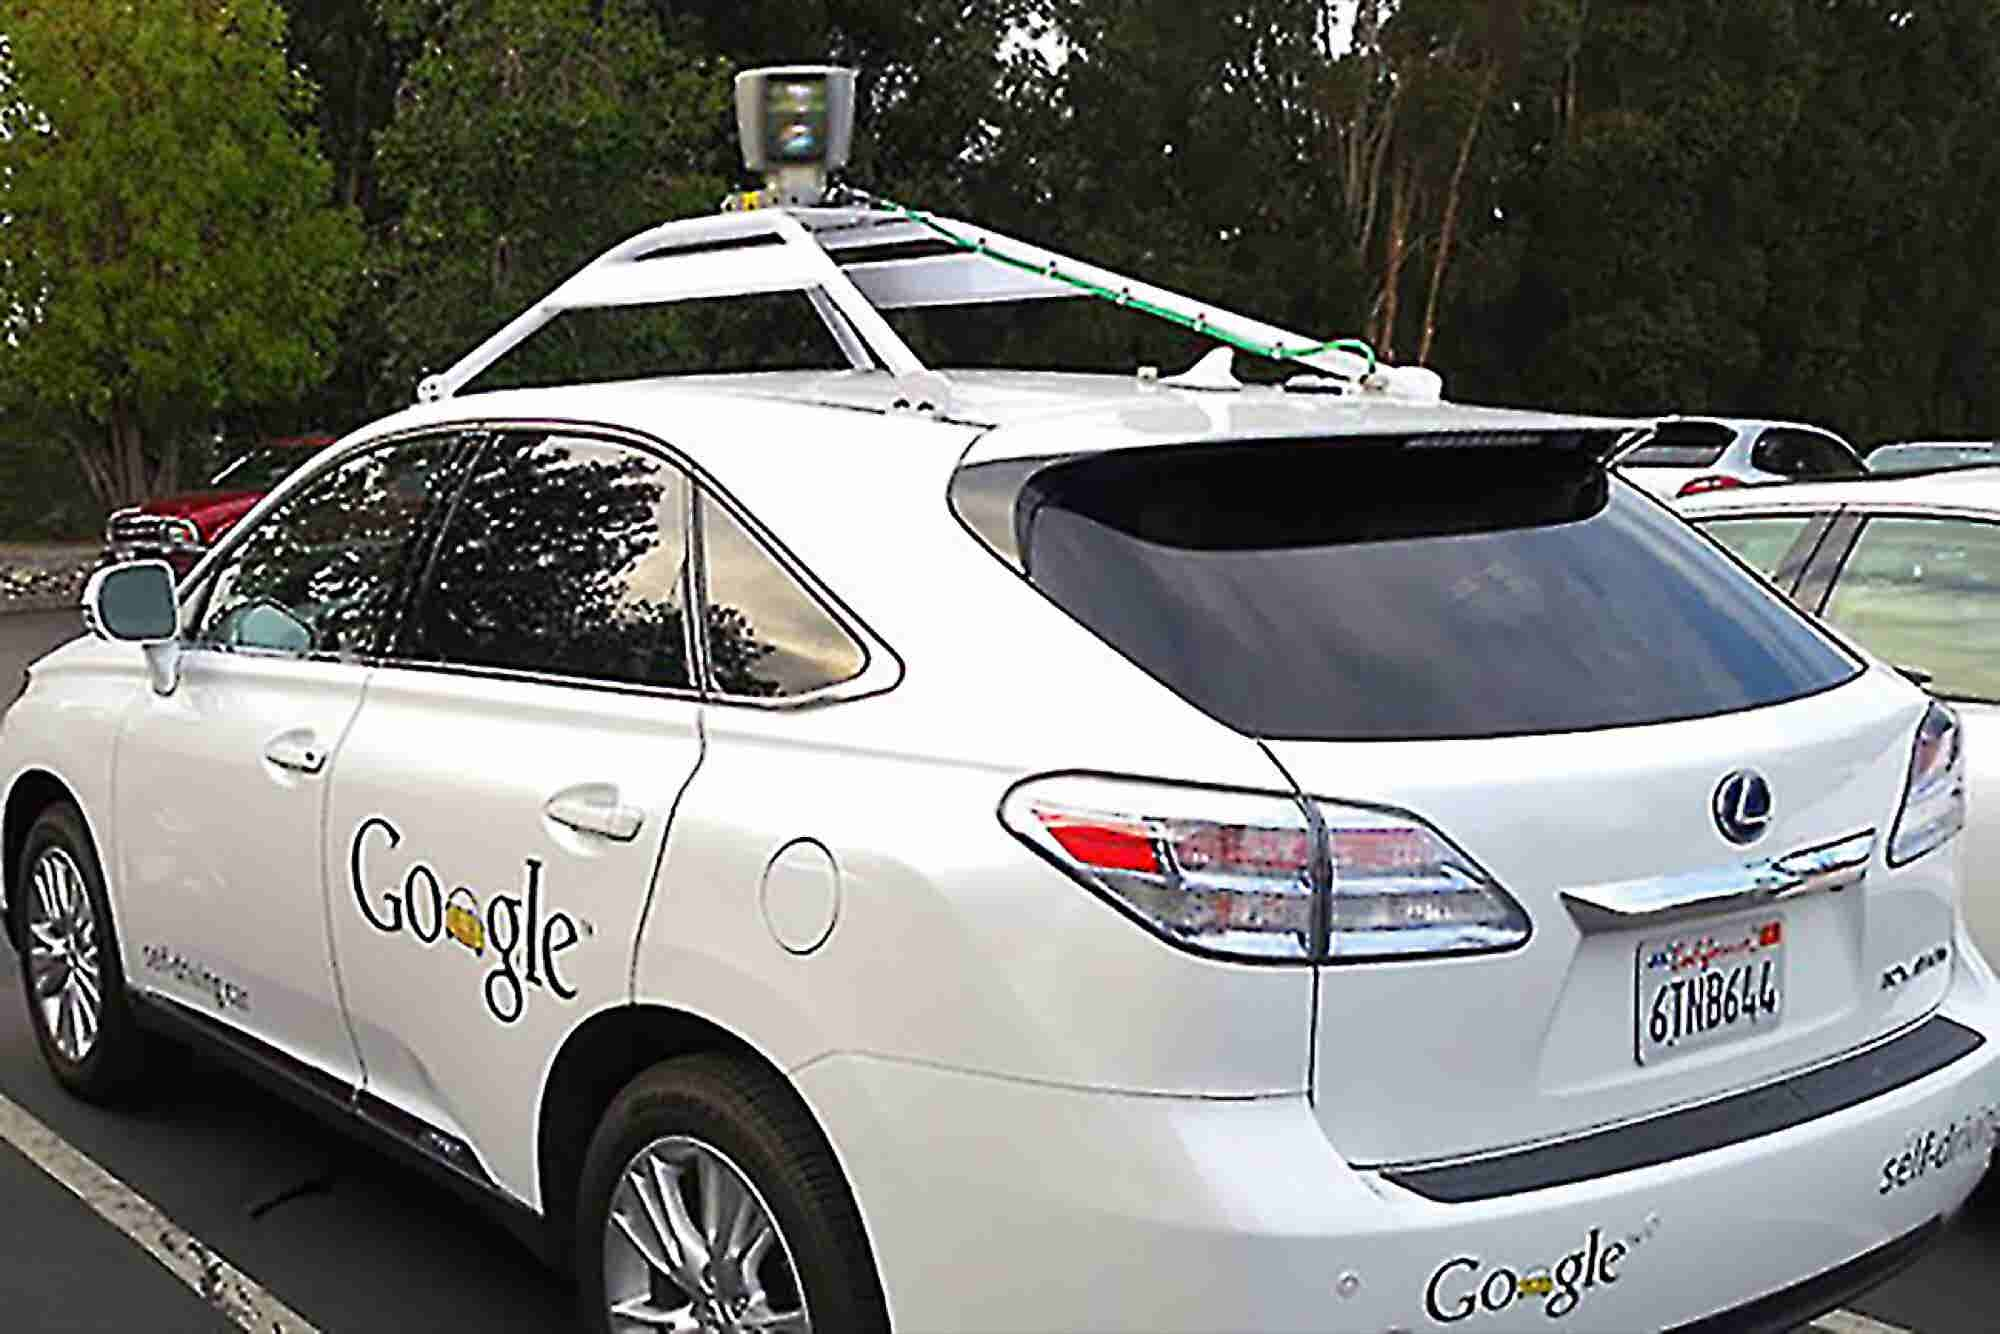 GM Open to Working With Google on Developing Self-Driving Cars